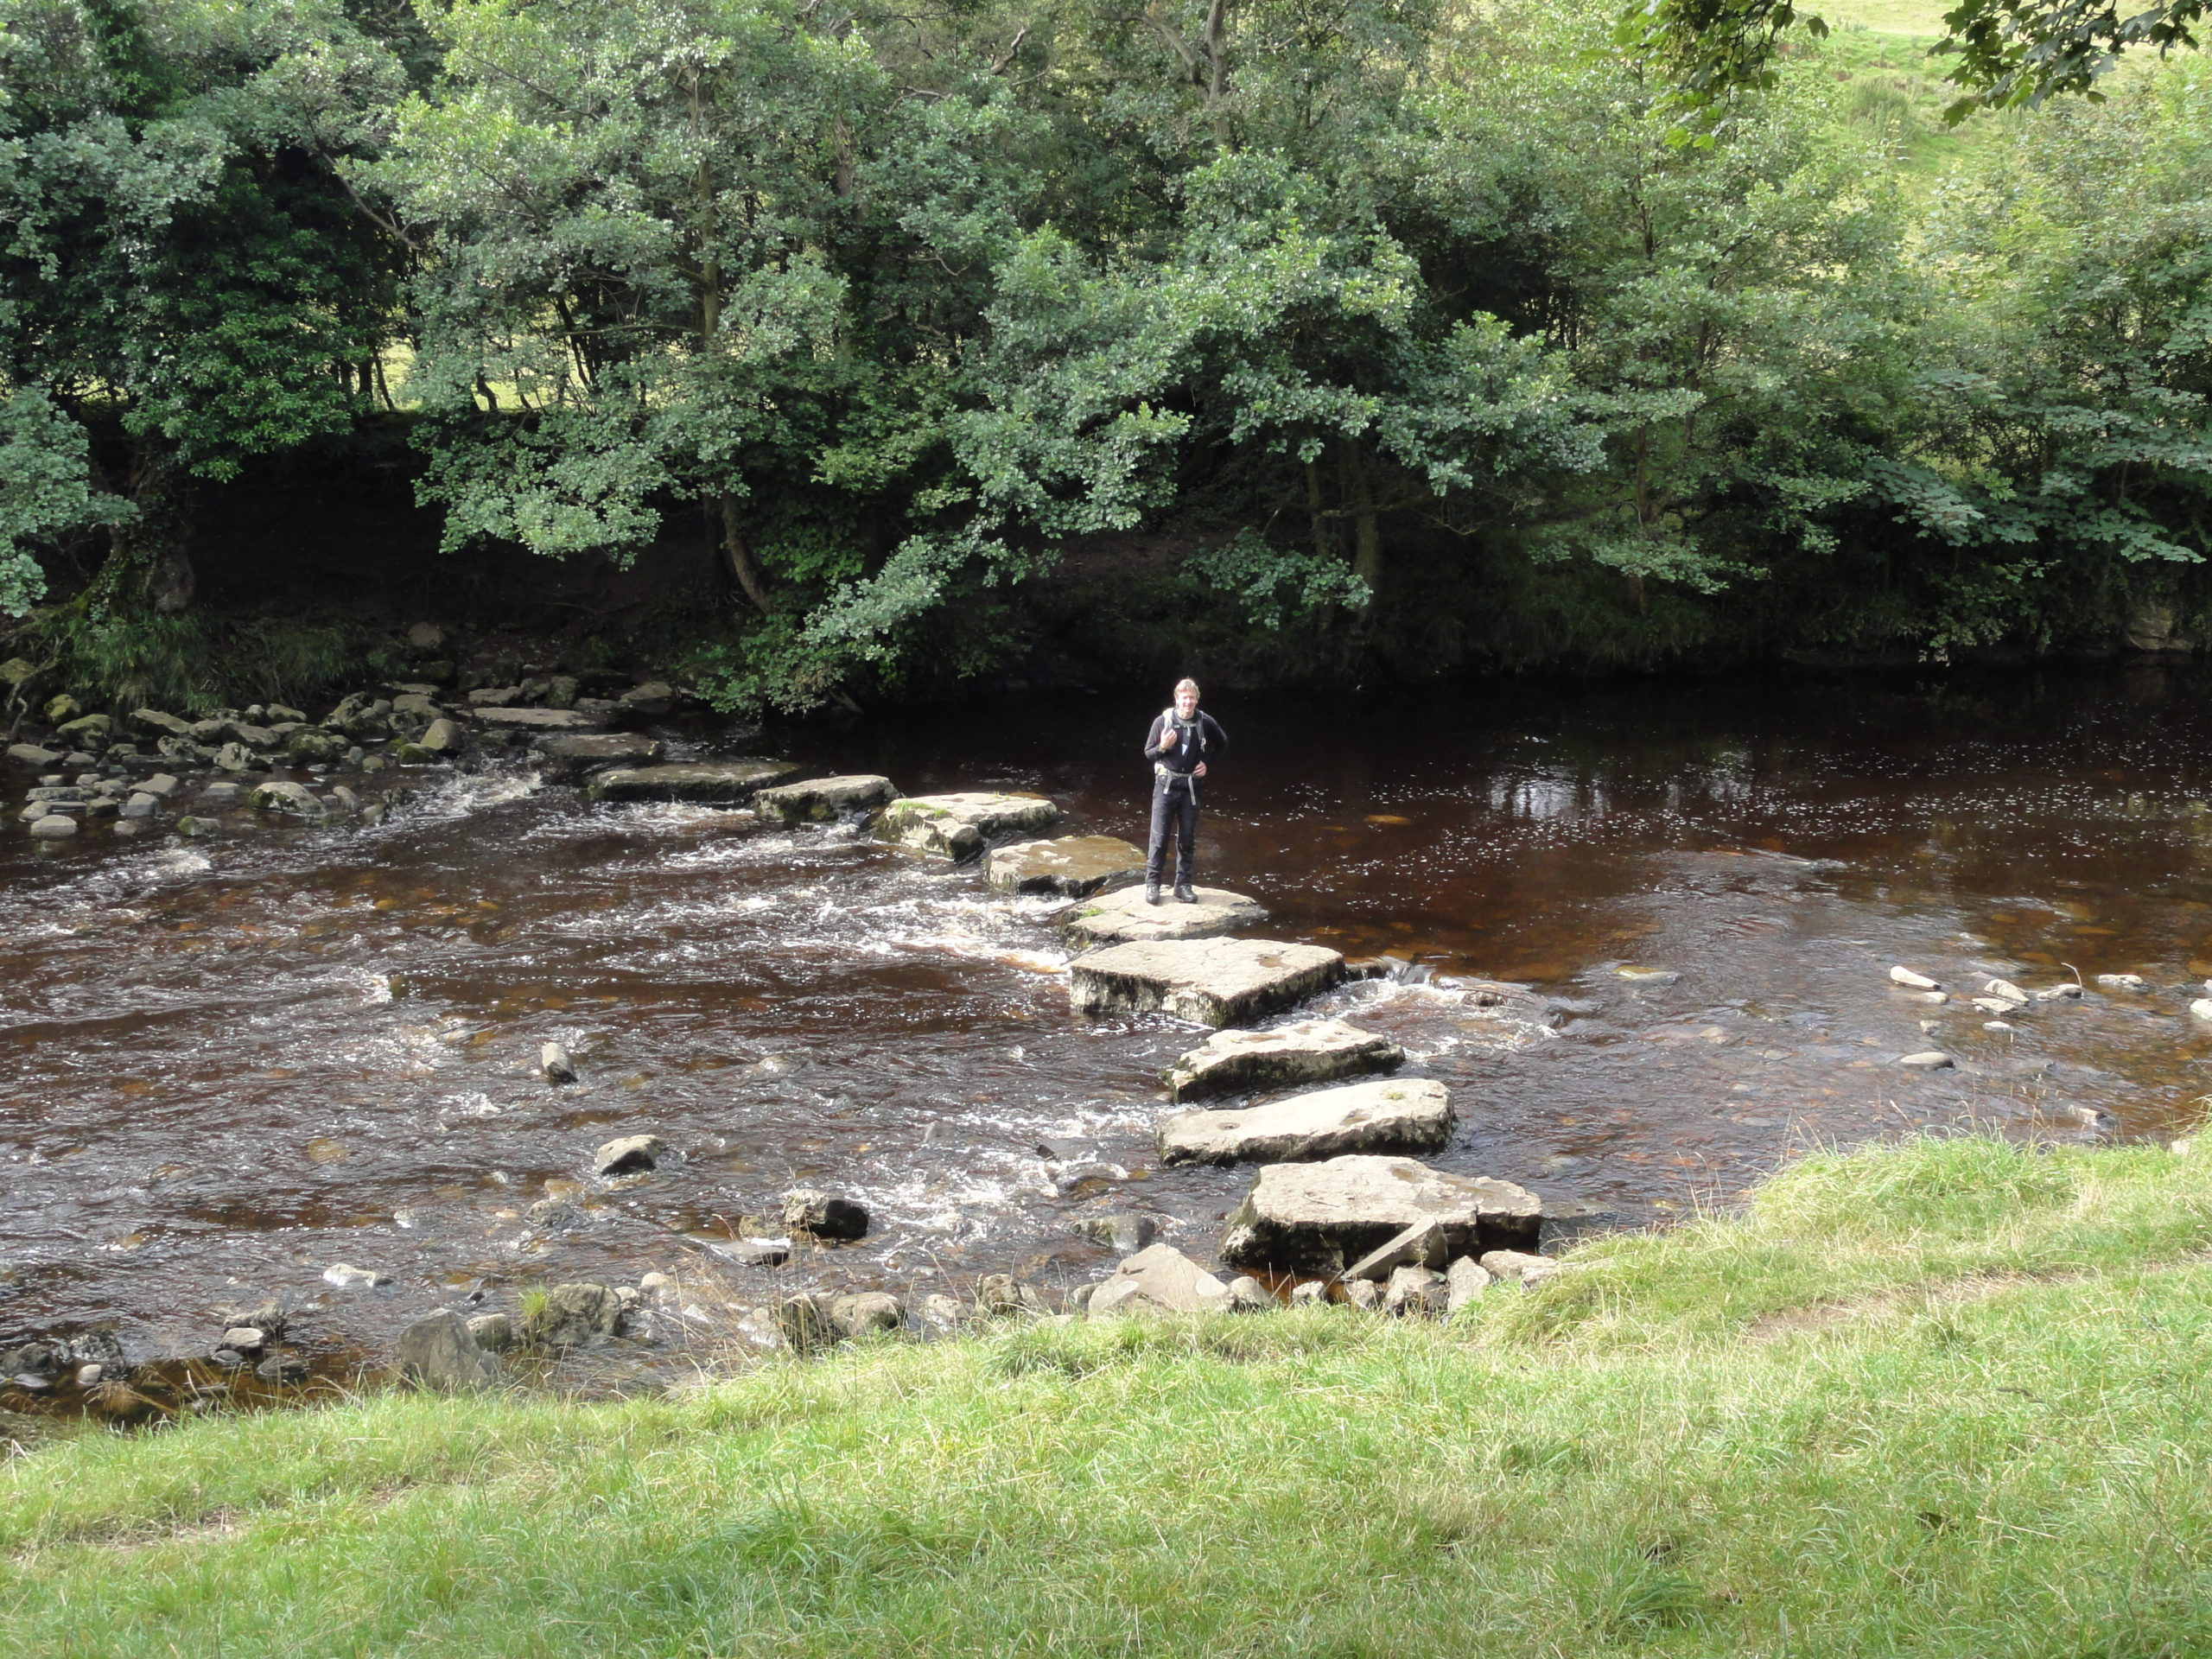 Stepping stones on the River Cover